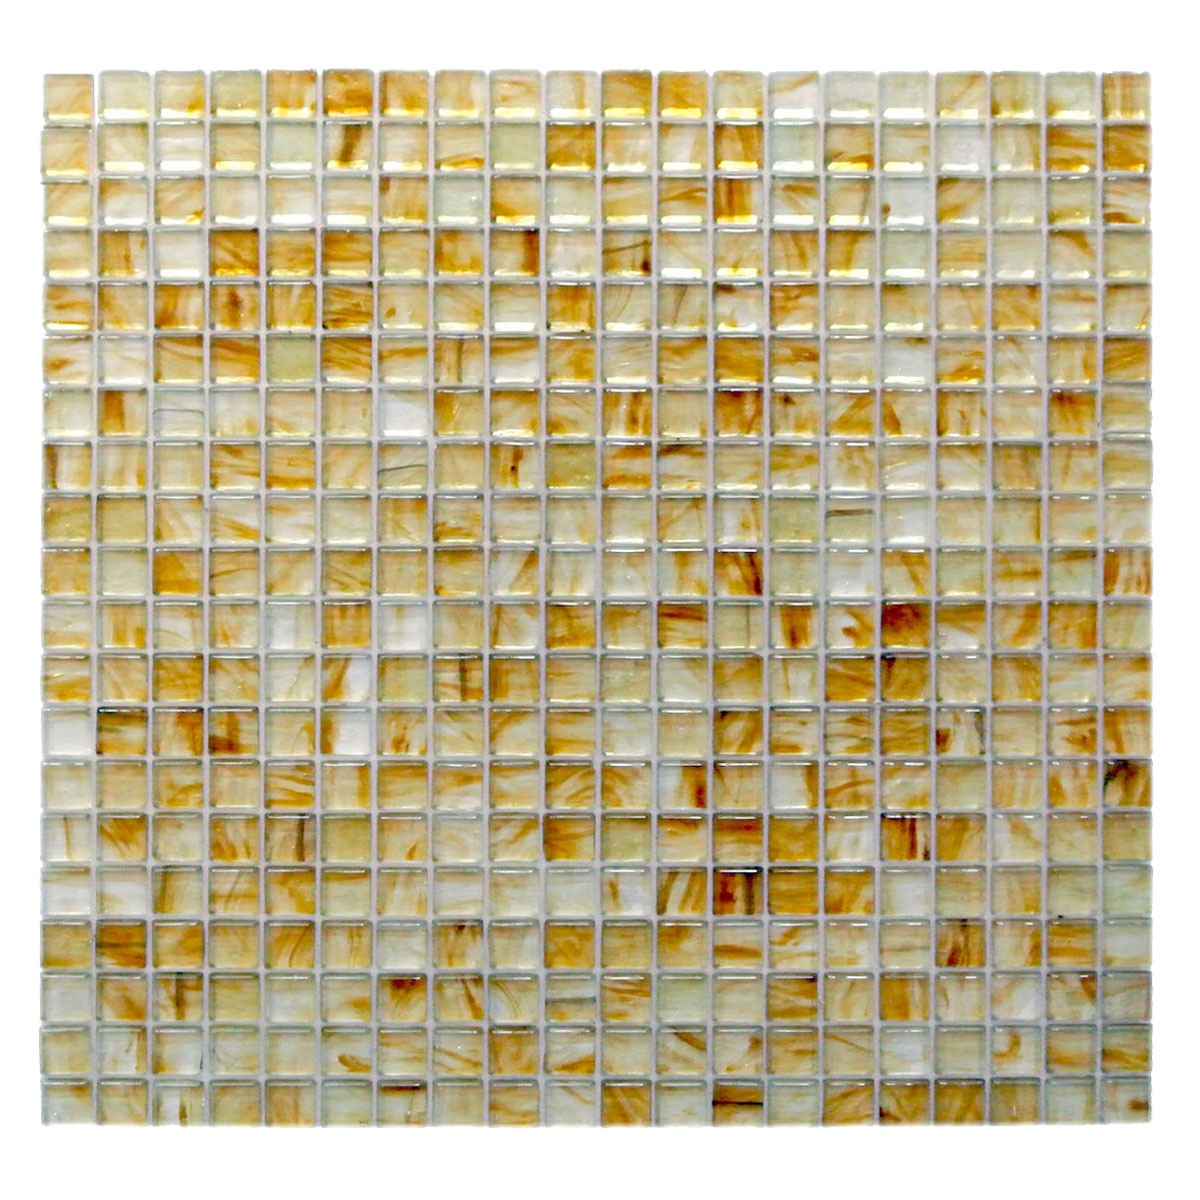 Amber 0.625 in x 0.625 in Glass Square Mosaic in MIELE Glossy